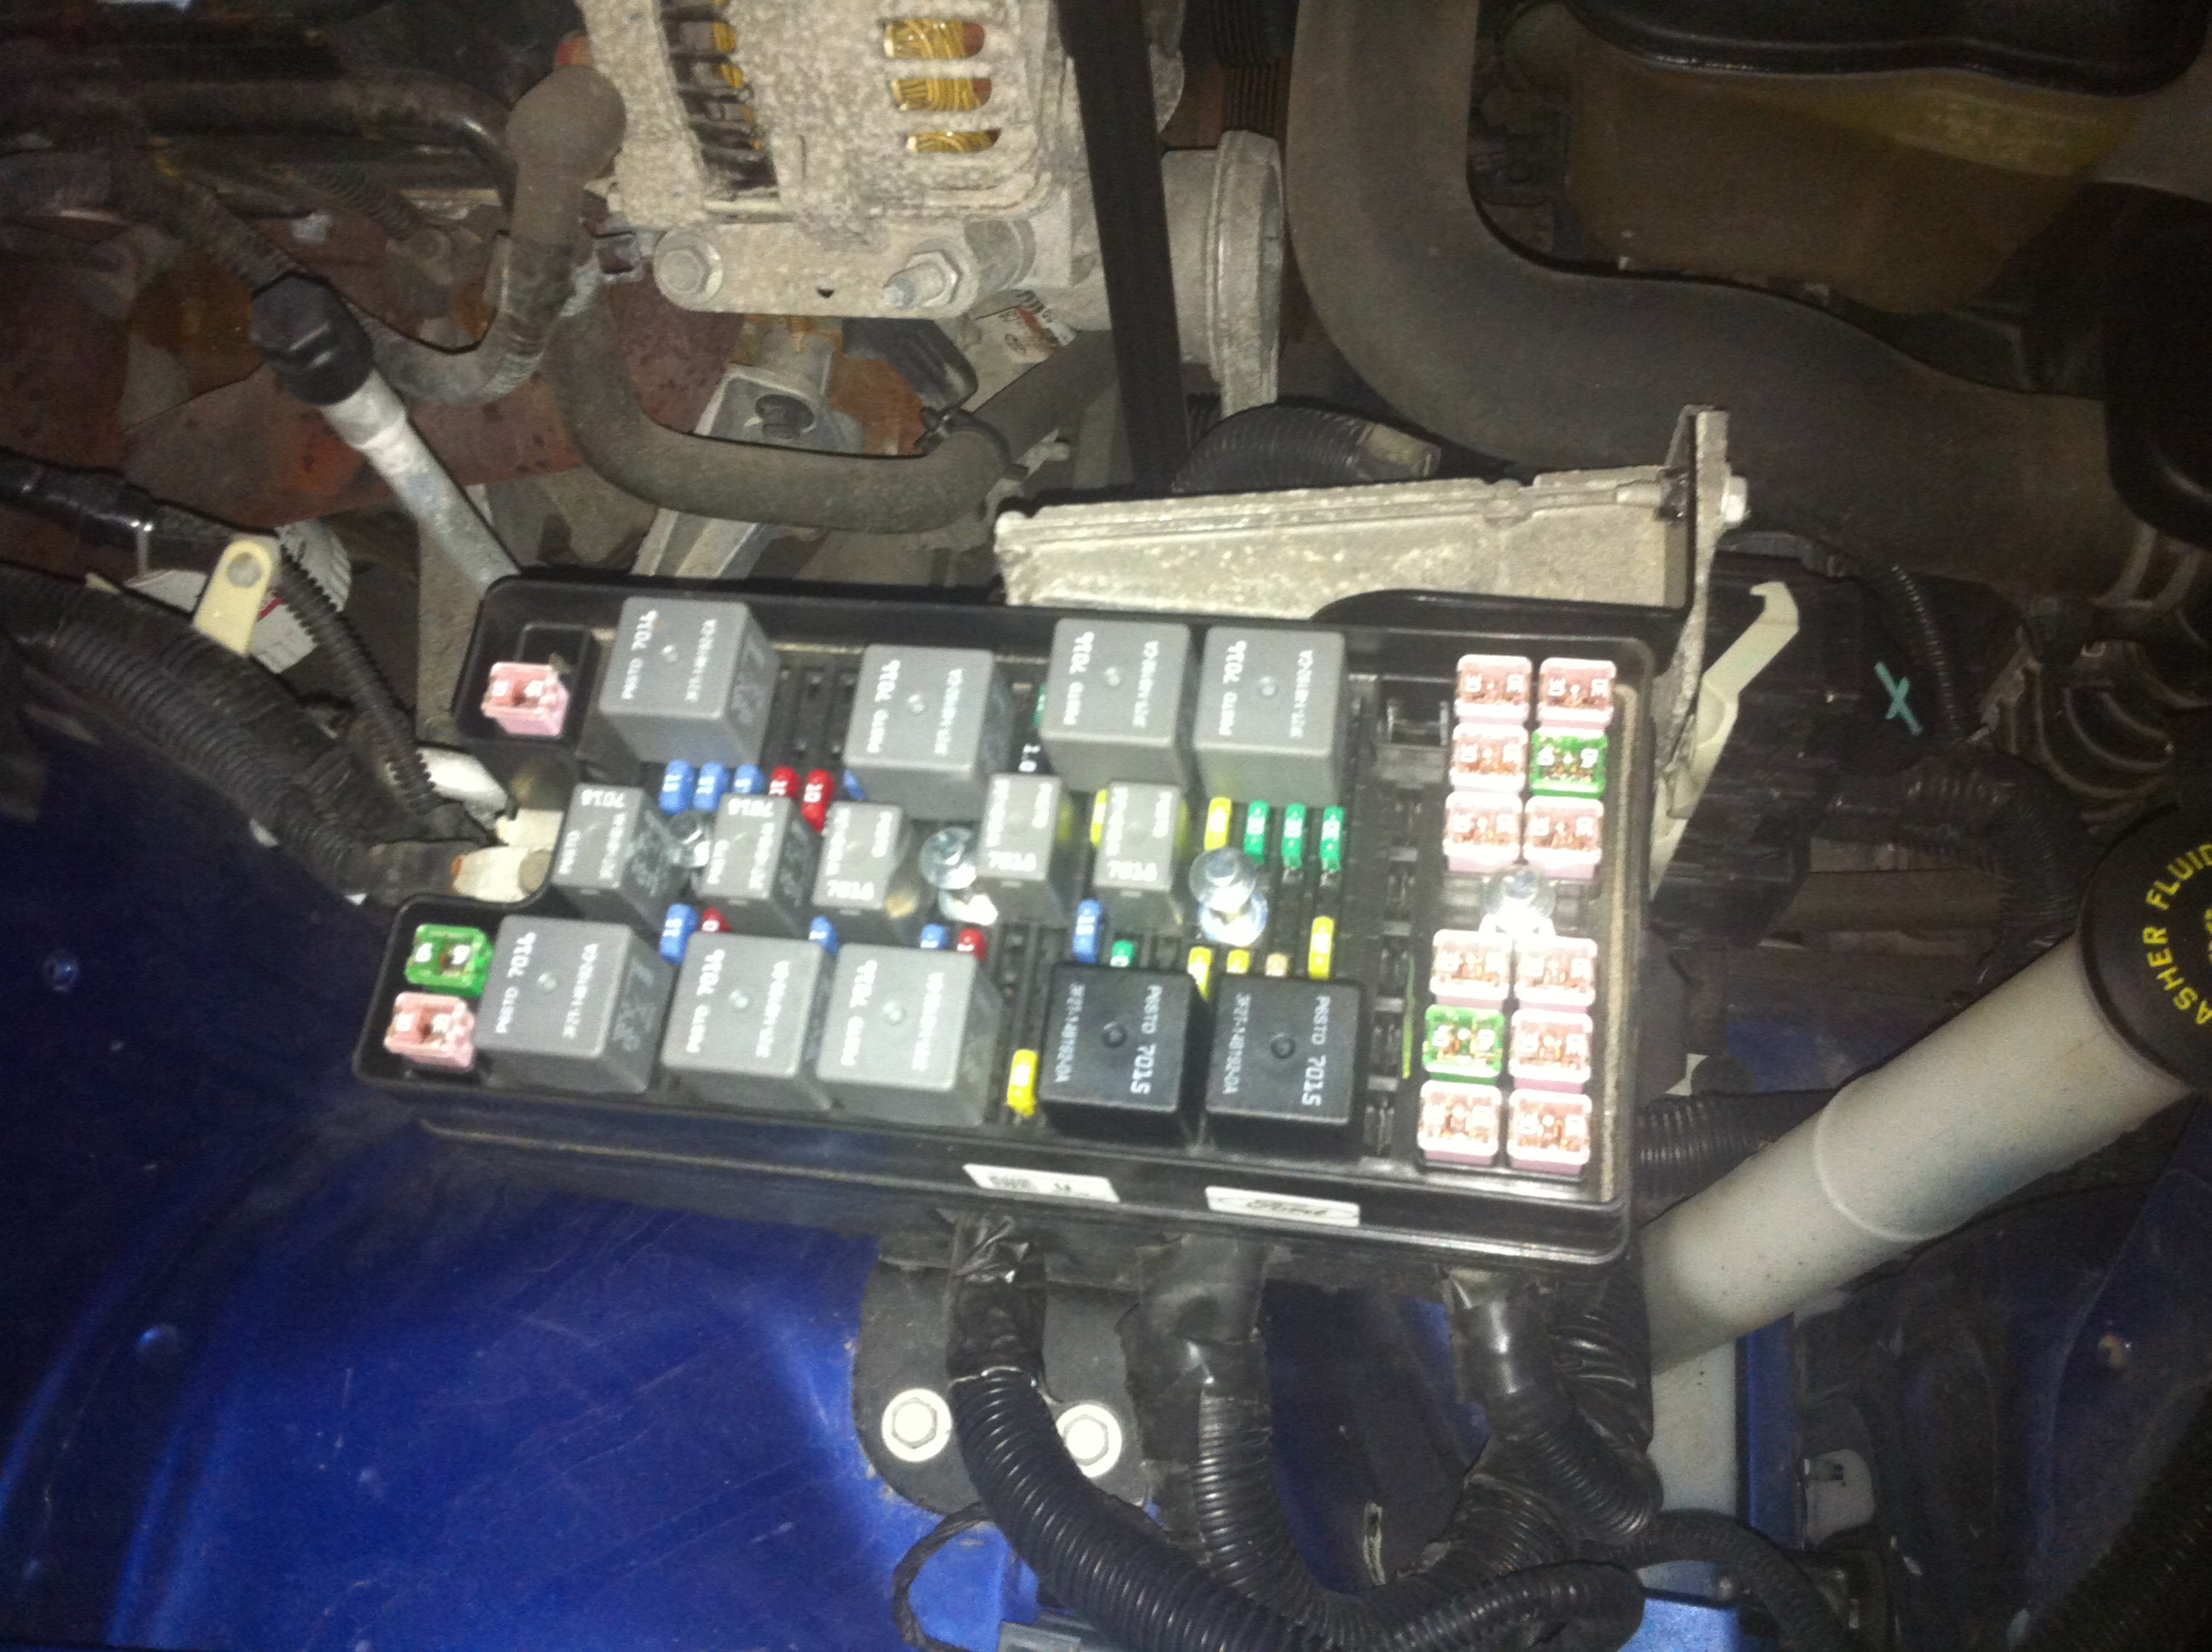 Fuse Box On 2007 Ford Mustang Blog Wiring Diagram Impala Location Car Instructions How To Unlock My Trunk